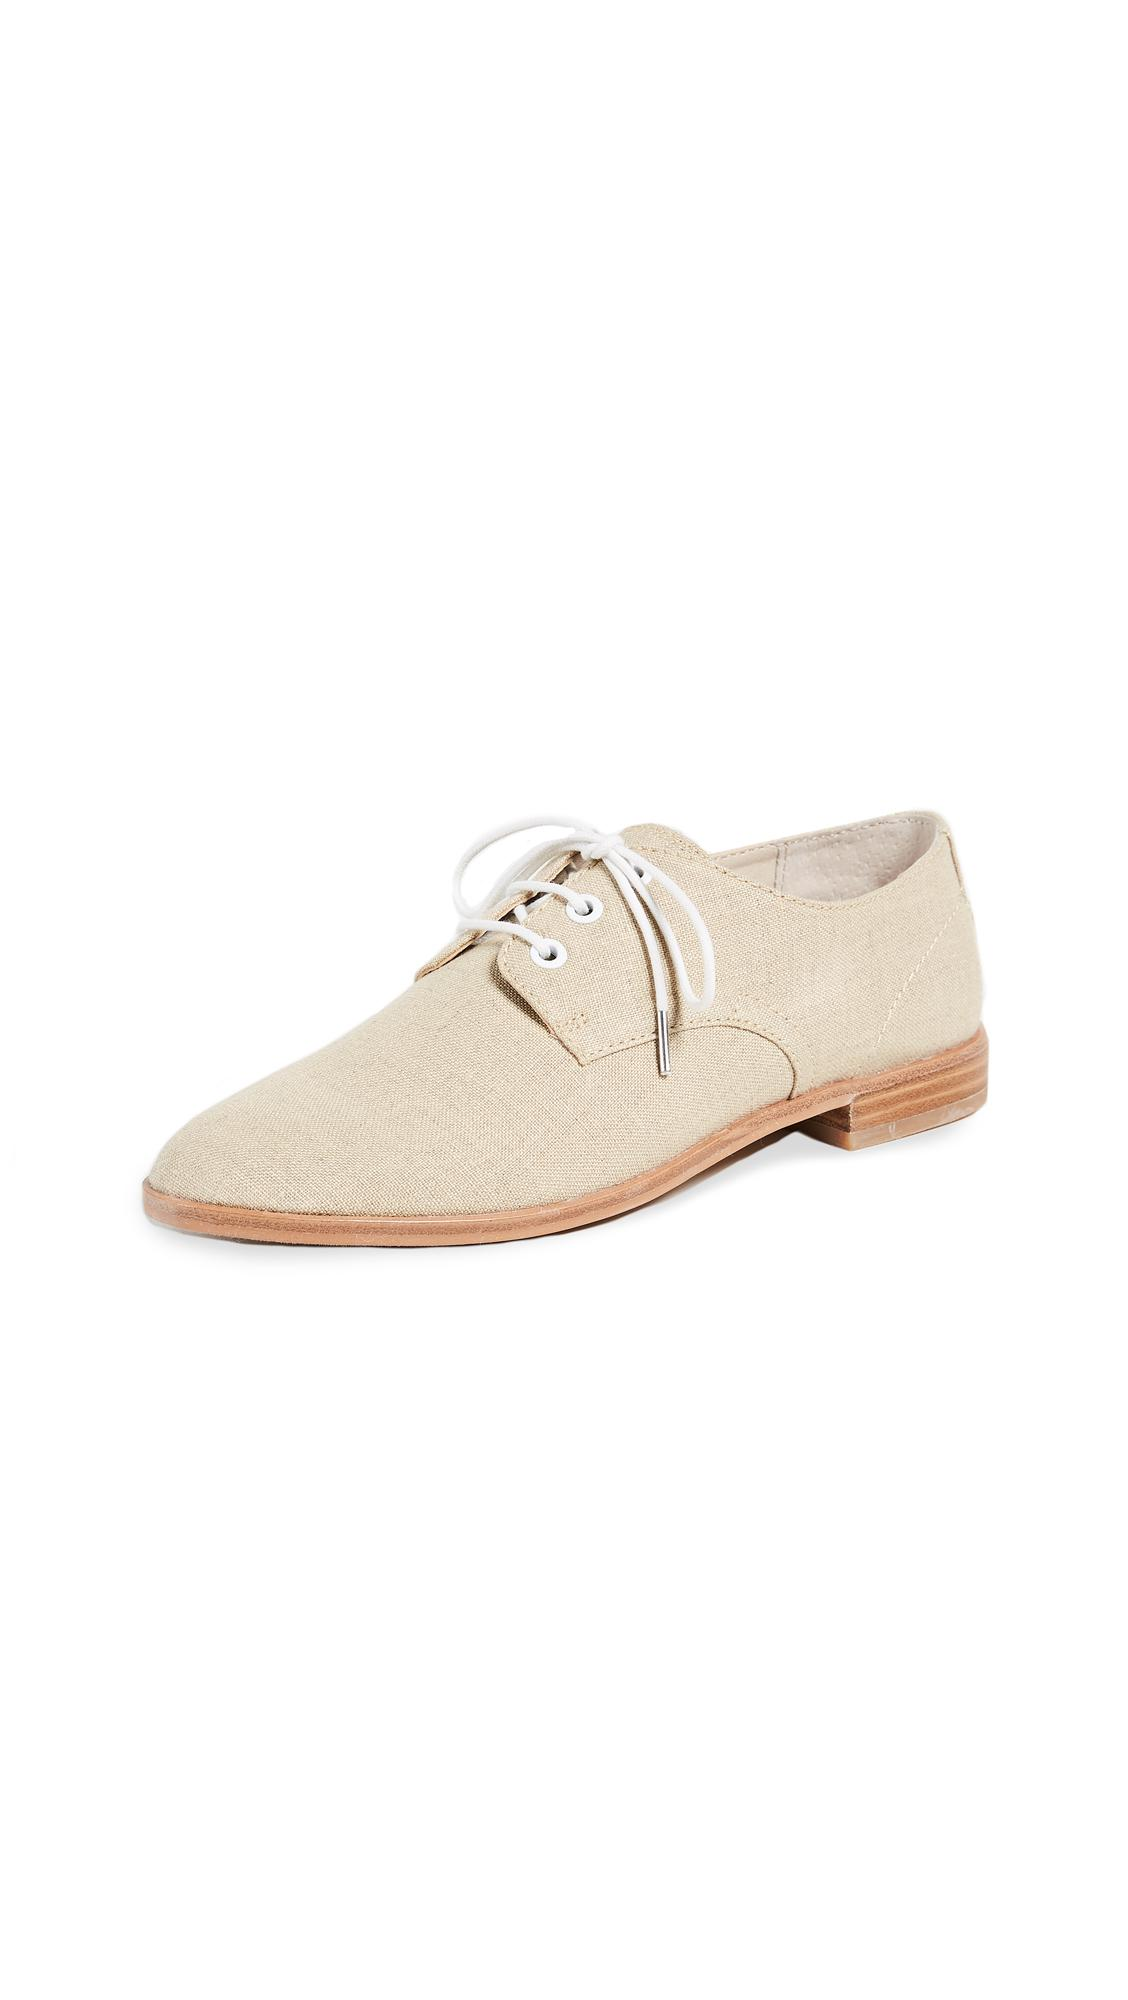 dad0173fef7 Lyst - Dolce Vita Pixyl Lace Up Oxfords in Natural